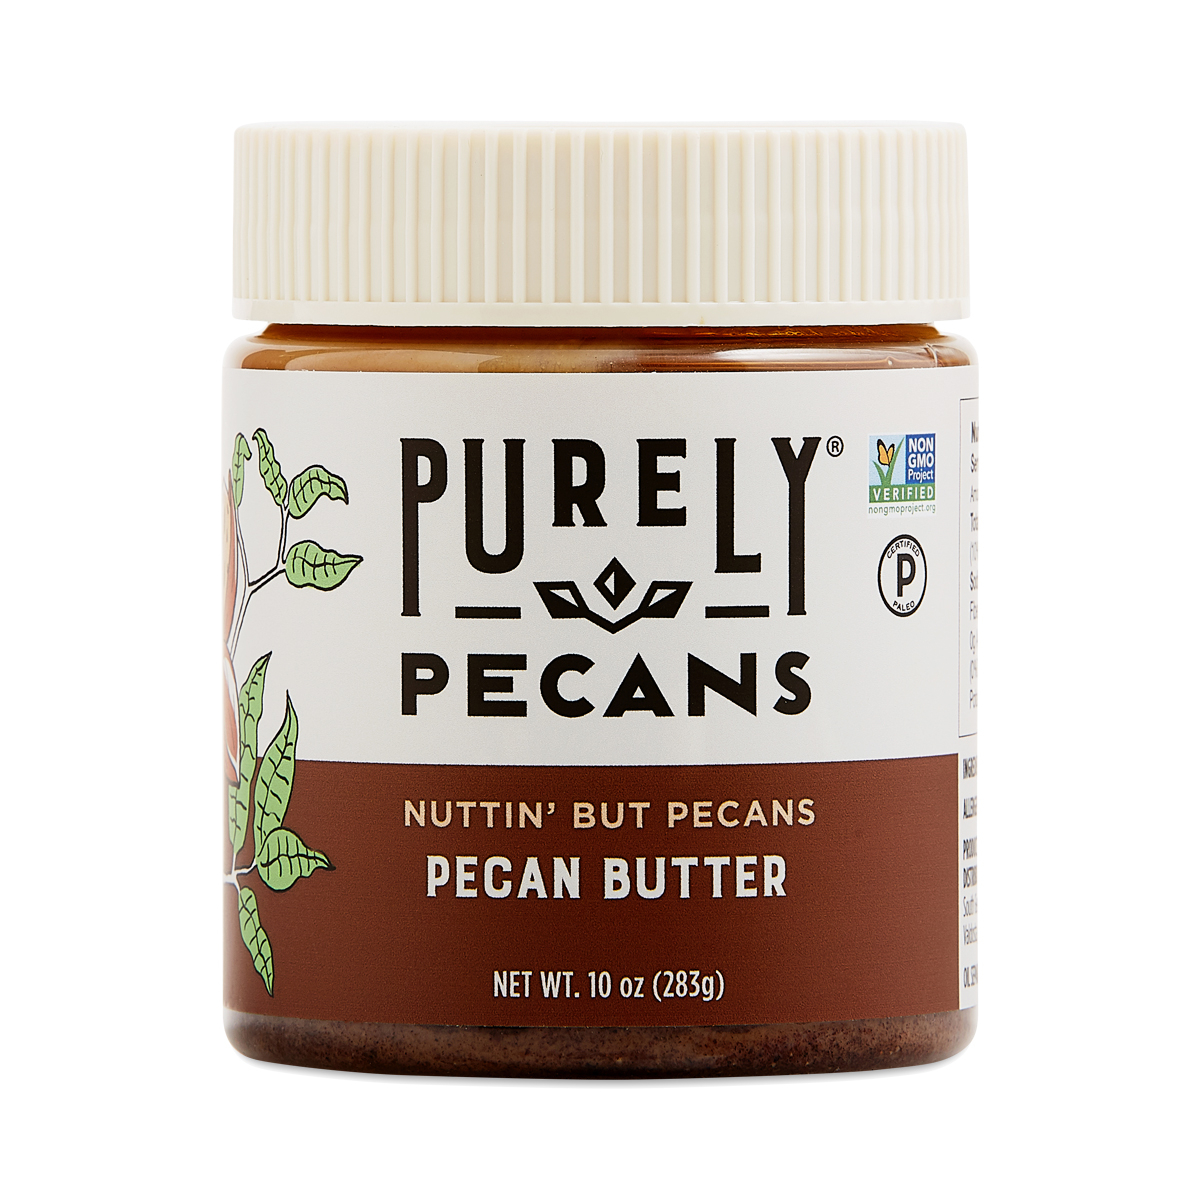 Nuttin' but Pecans Pecan Butter - Purely Pecans - Certified Paleo, PaleoVegan by the Paleo Foundation